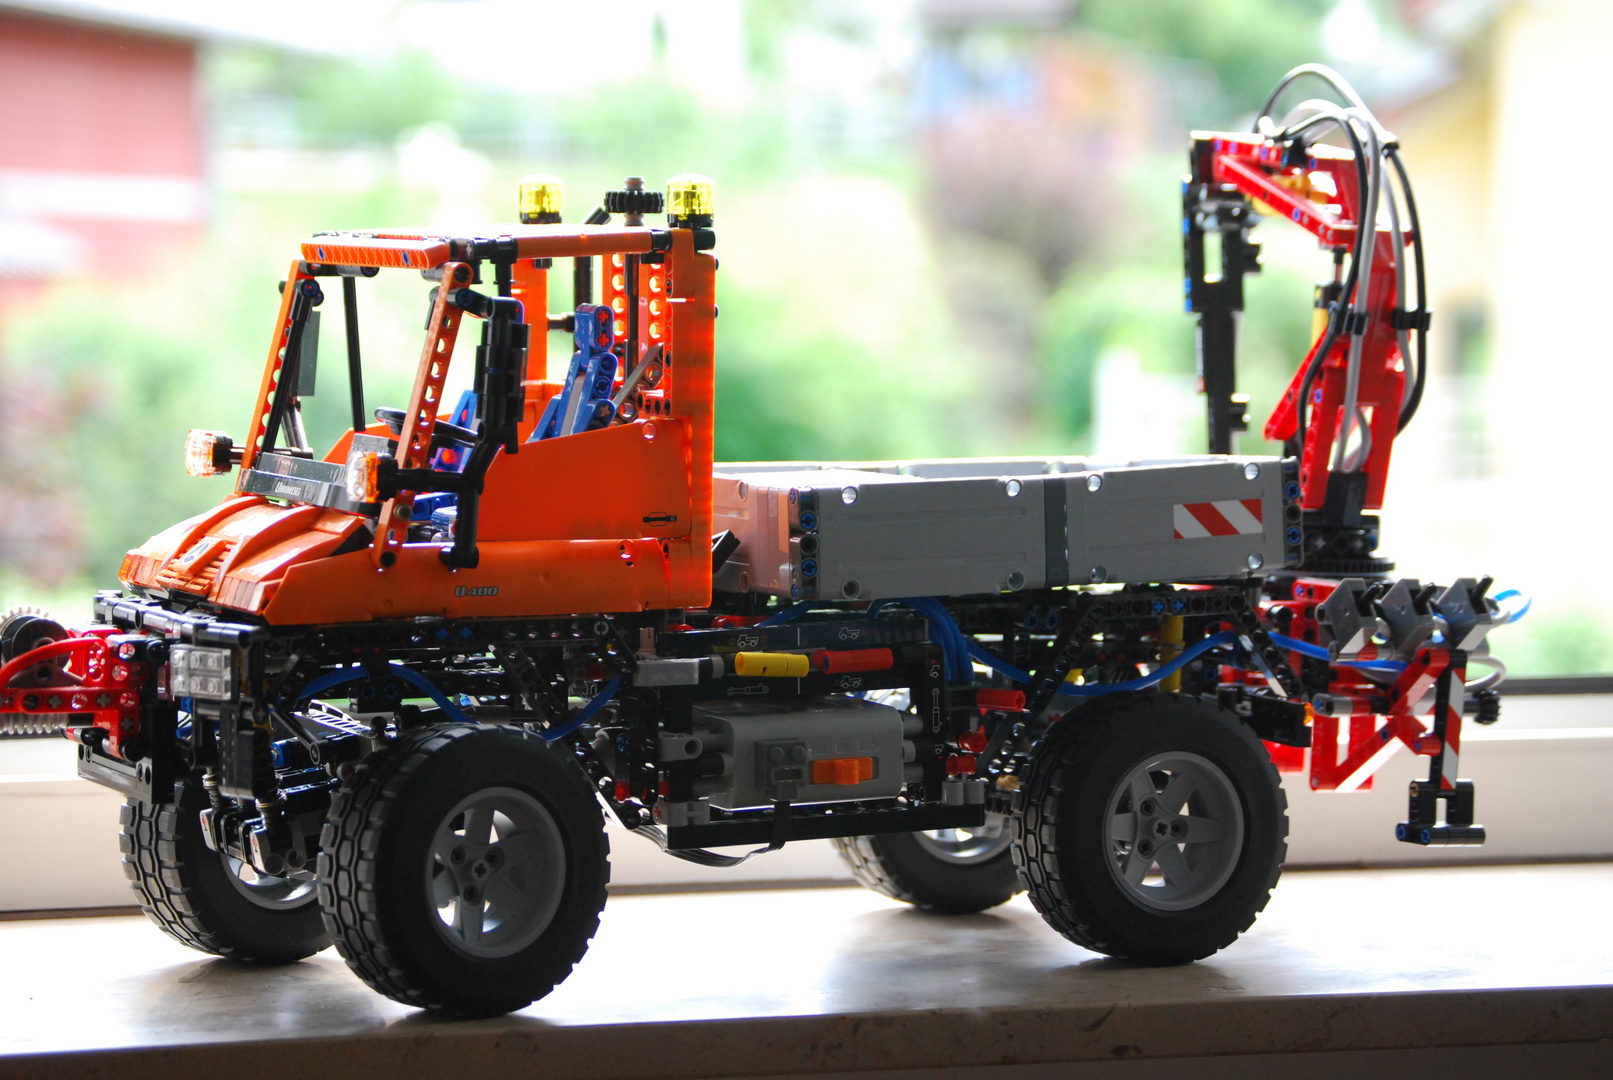 der lego technic unimog als modell foto bild autos. Black Bedroom Furniture Sets. Home Design Ideas